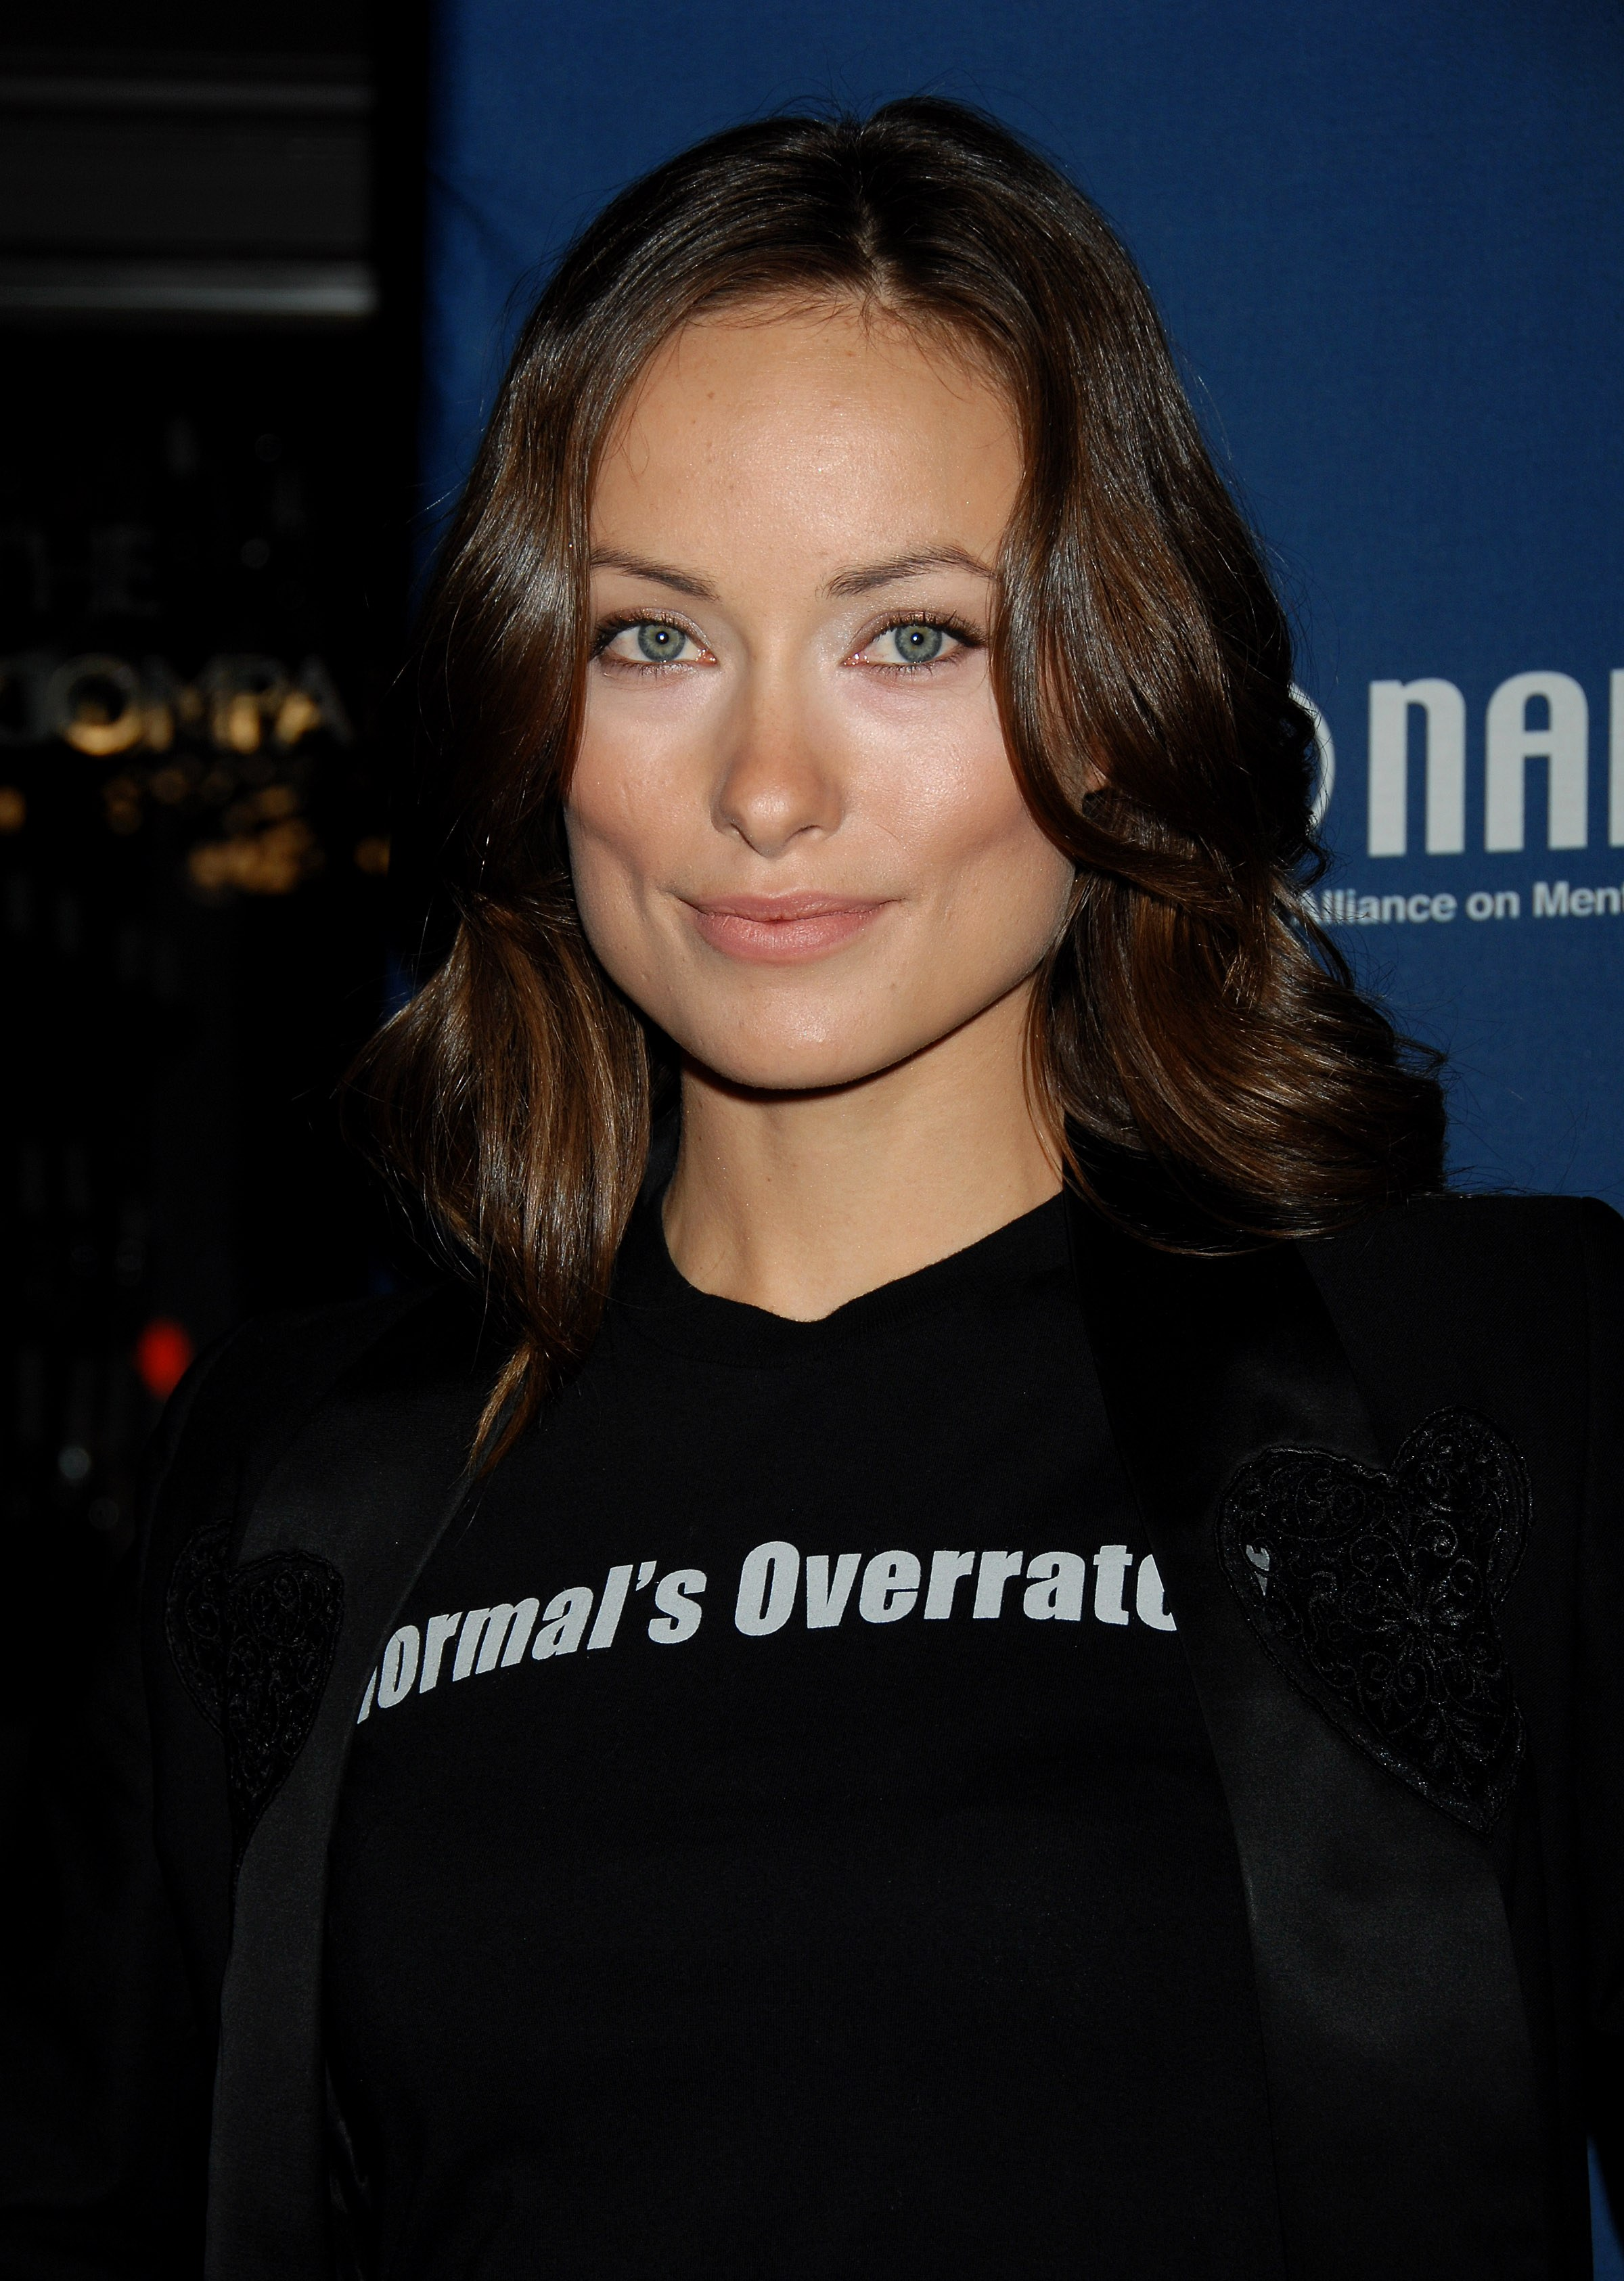 25530_Olivia_Wilde-_Party_in_celebration_of_the_100th_episode_CU_ISA_05_122_187lo.jpg